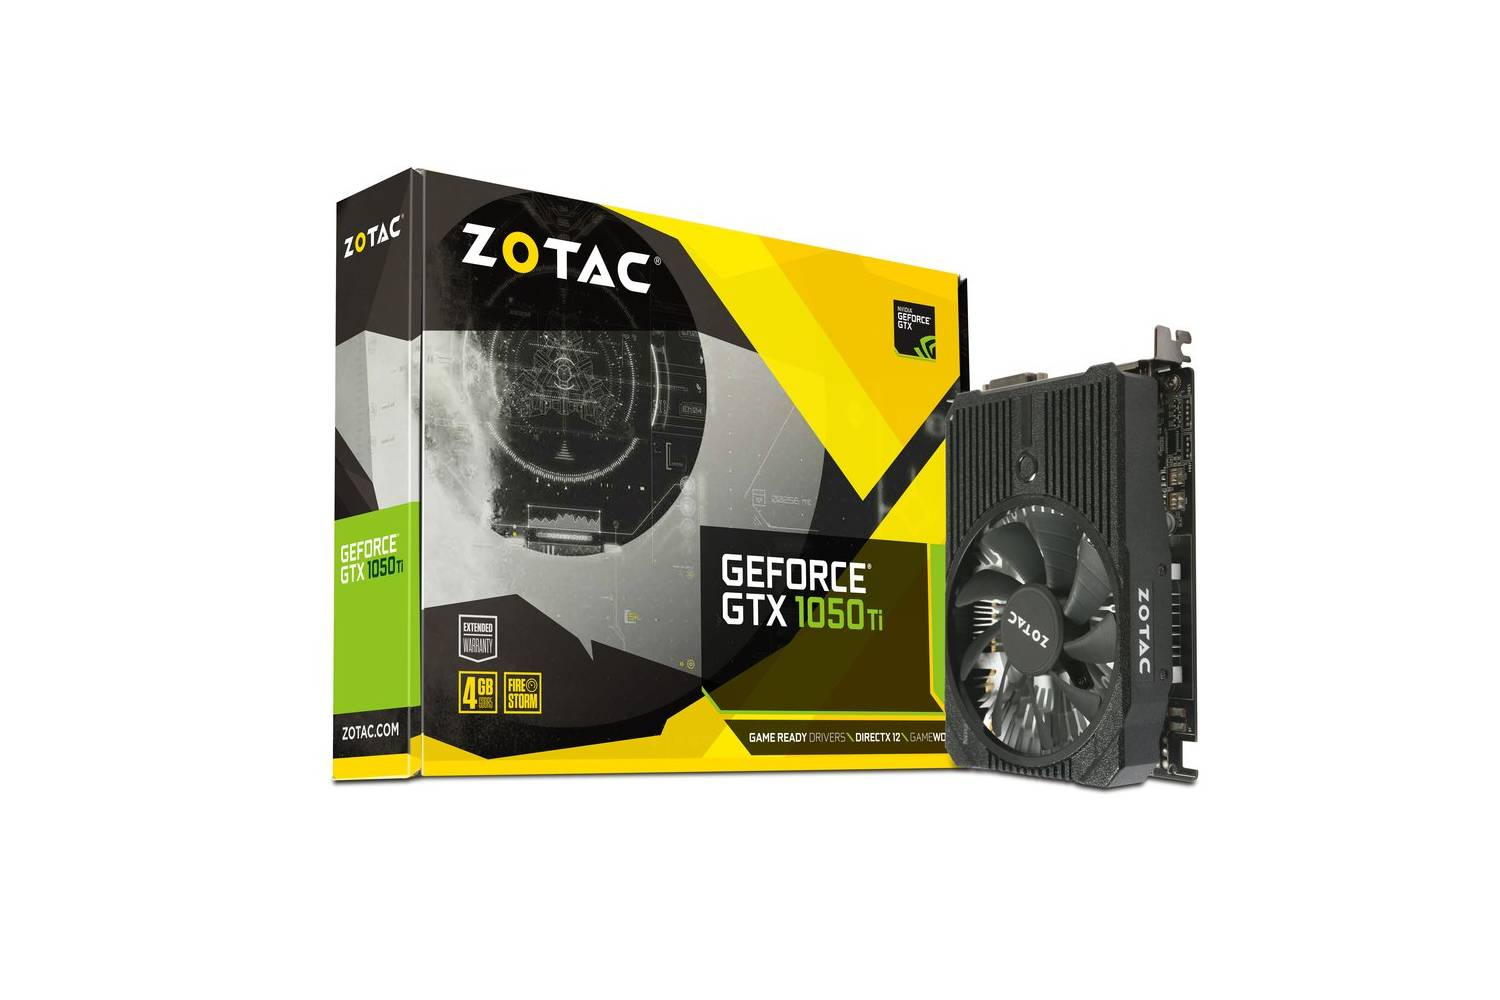 ZOTAC GeForce GTX 1050 ti mini Graphics Card